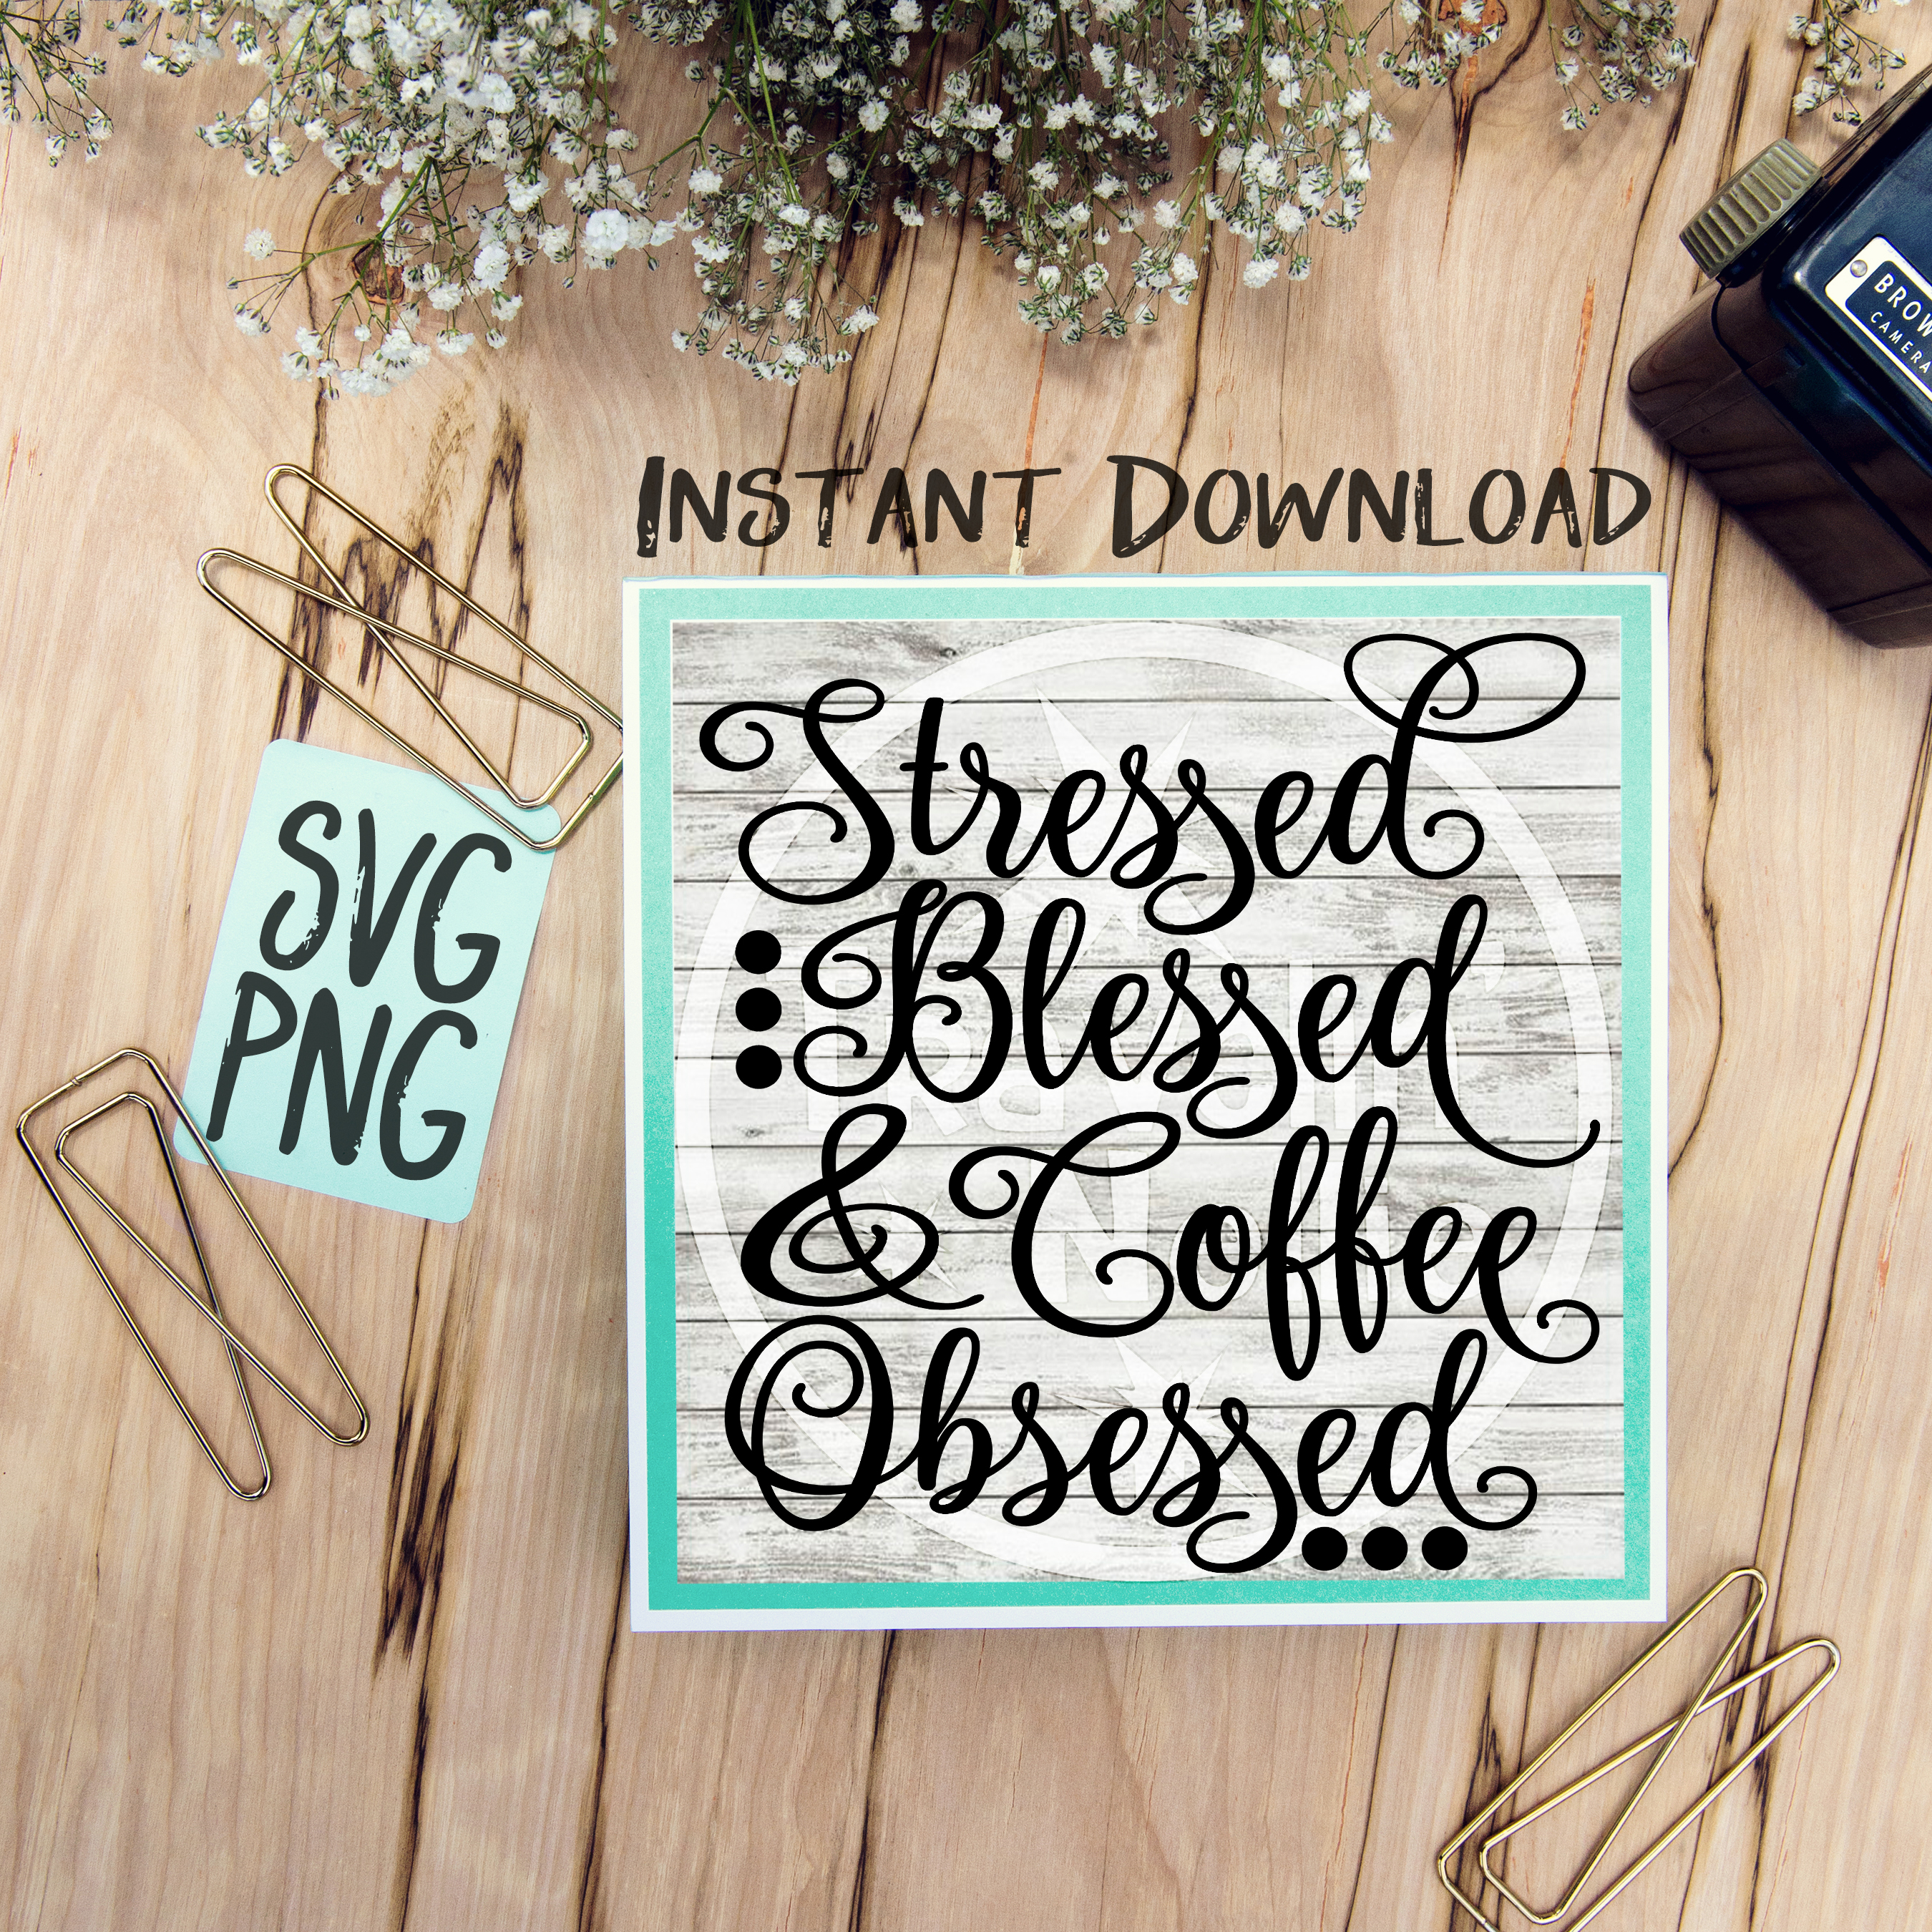 Stressed Blessed Coffee Obsessed SVG PNG for Cutting Machines Cricut Cameo Brother Cut Print Files Instant Download Image Sign Scrapbooking example image 1